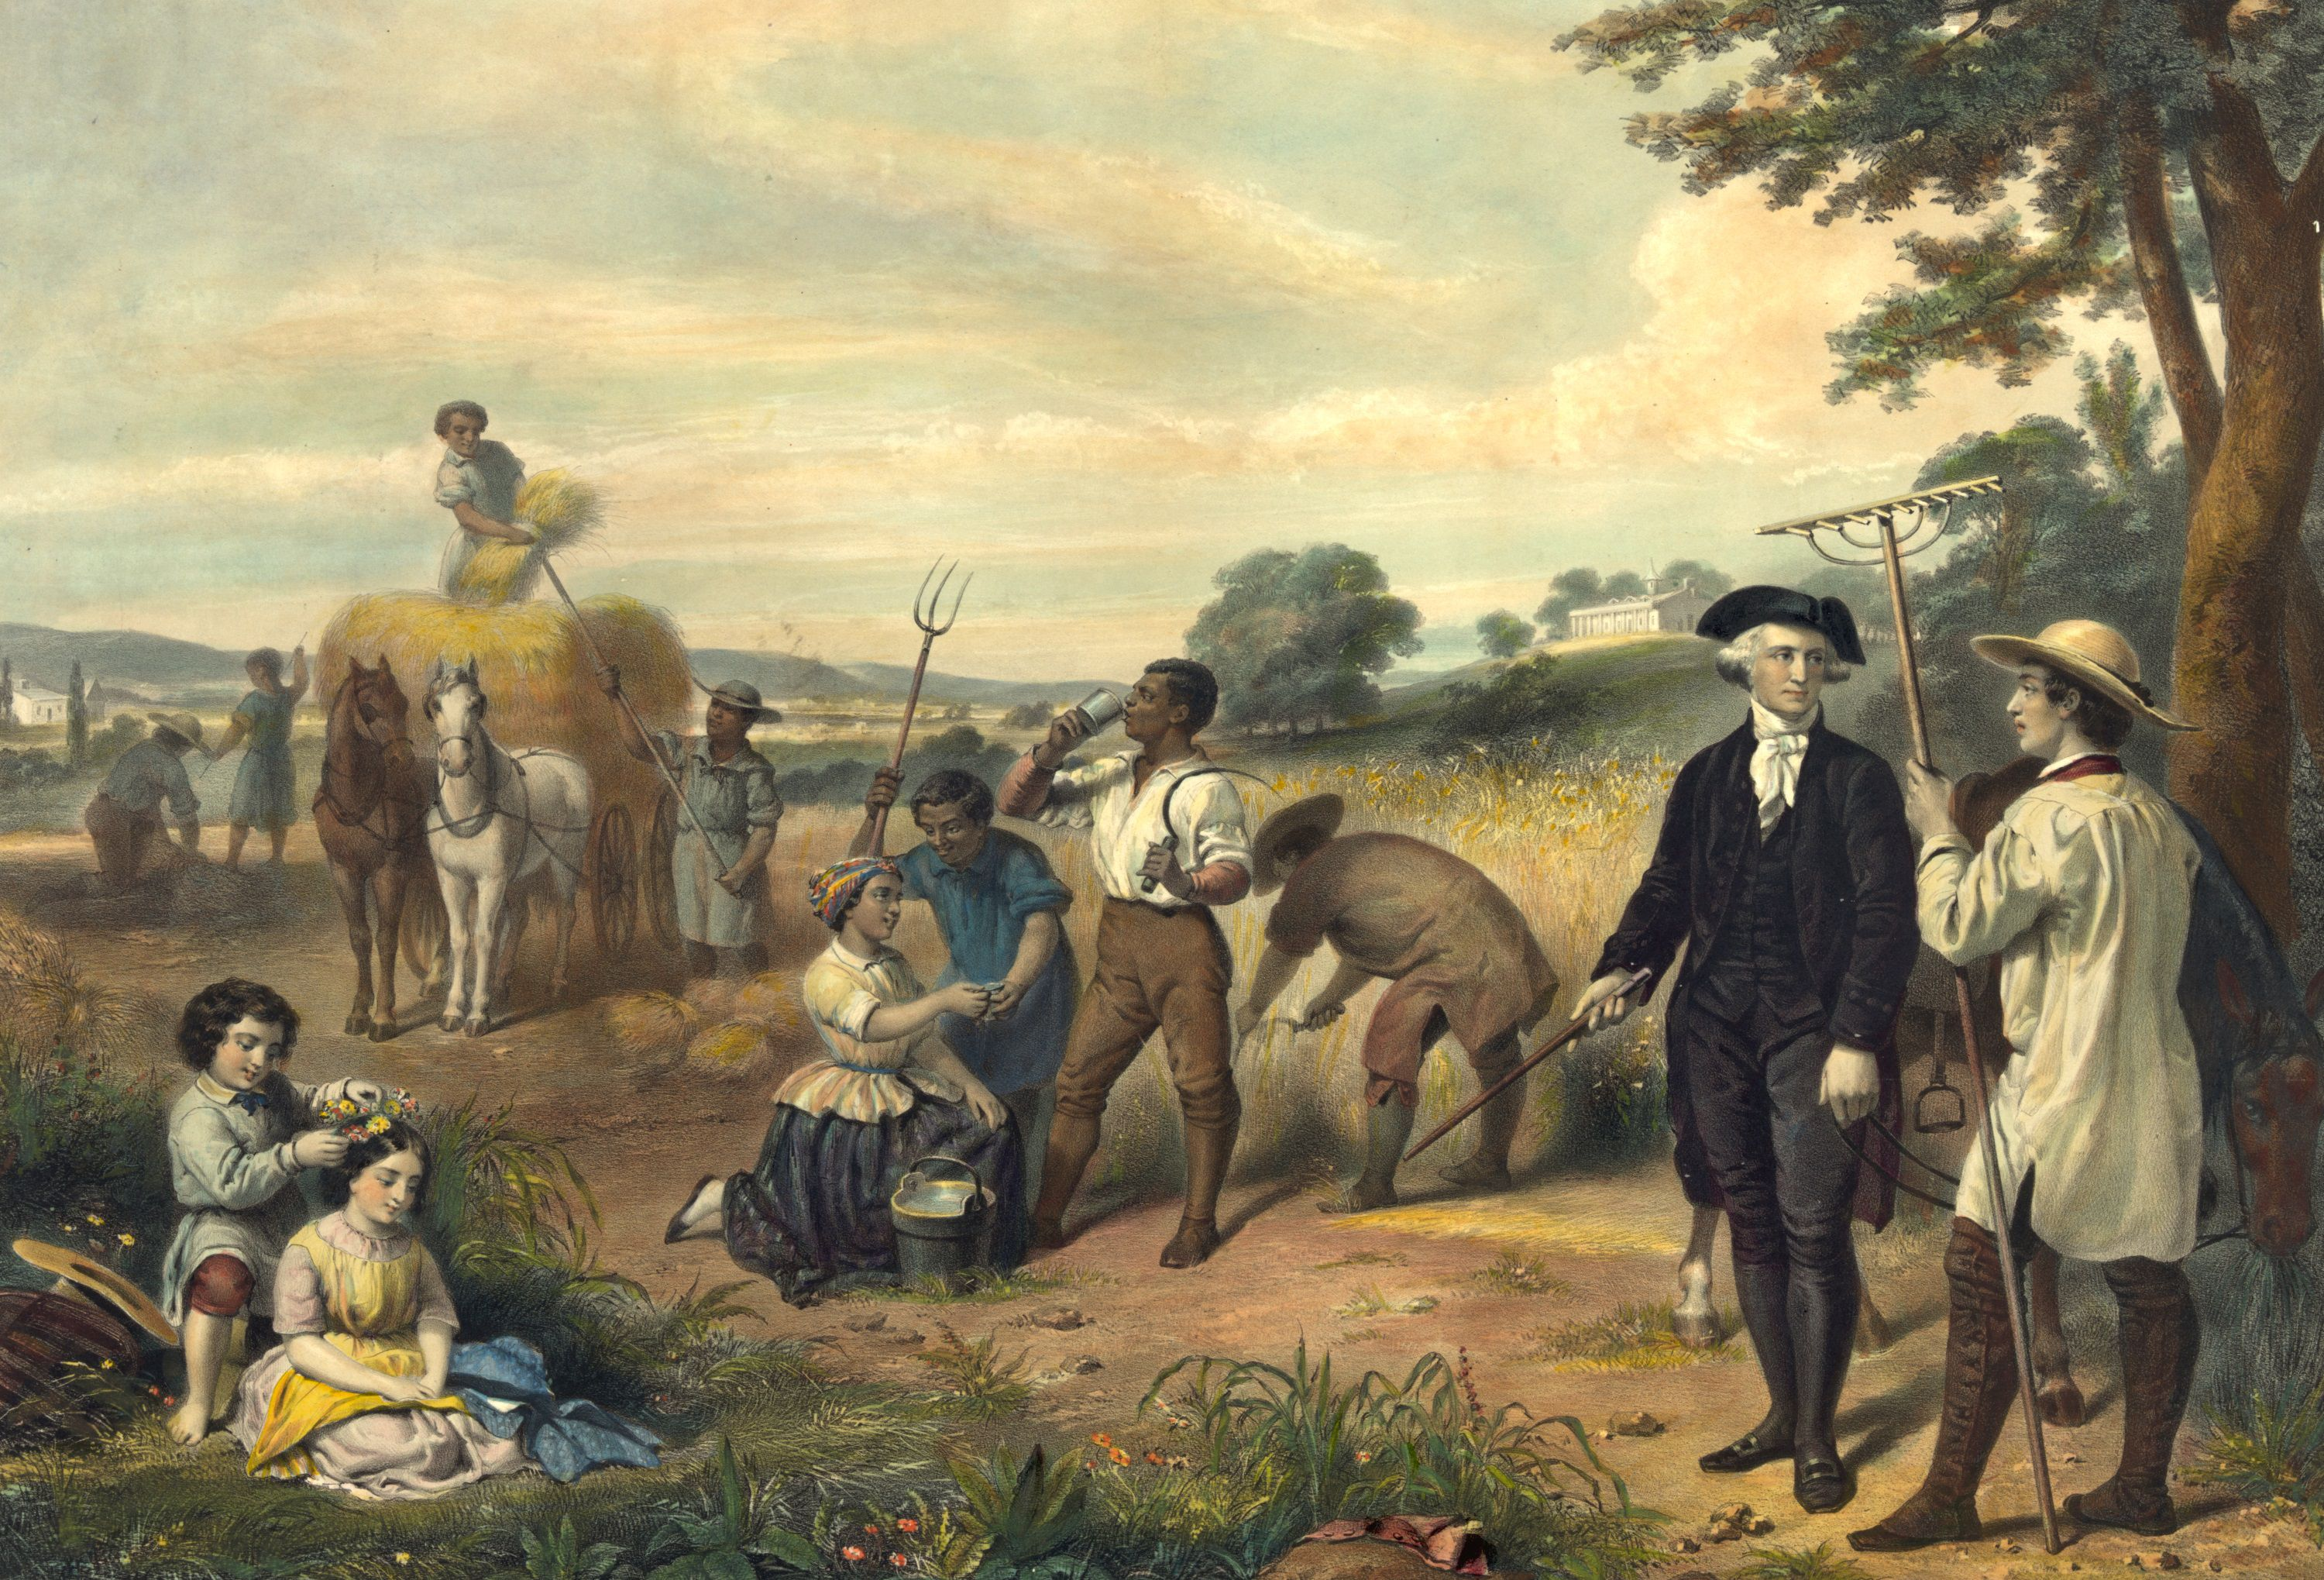 what impact did the stono rebellion have on the lives of slaves a surprising number of american presidents owned slaves